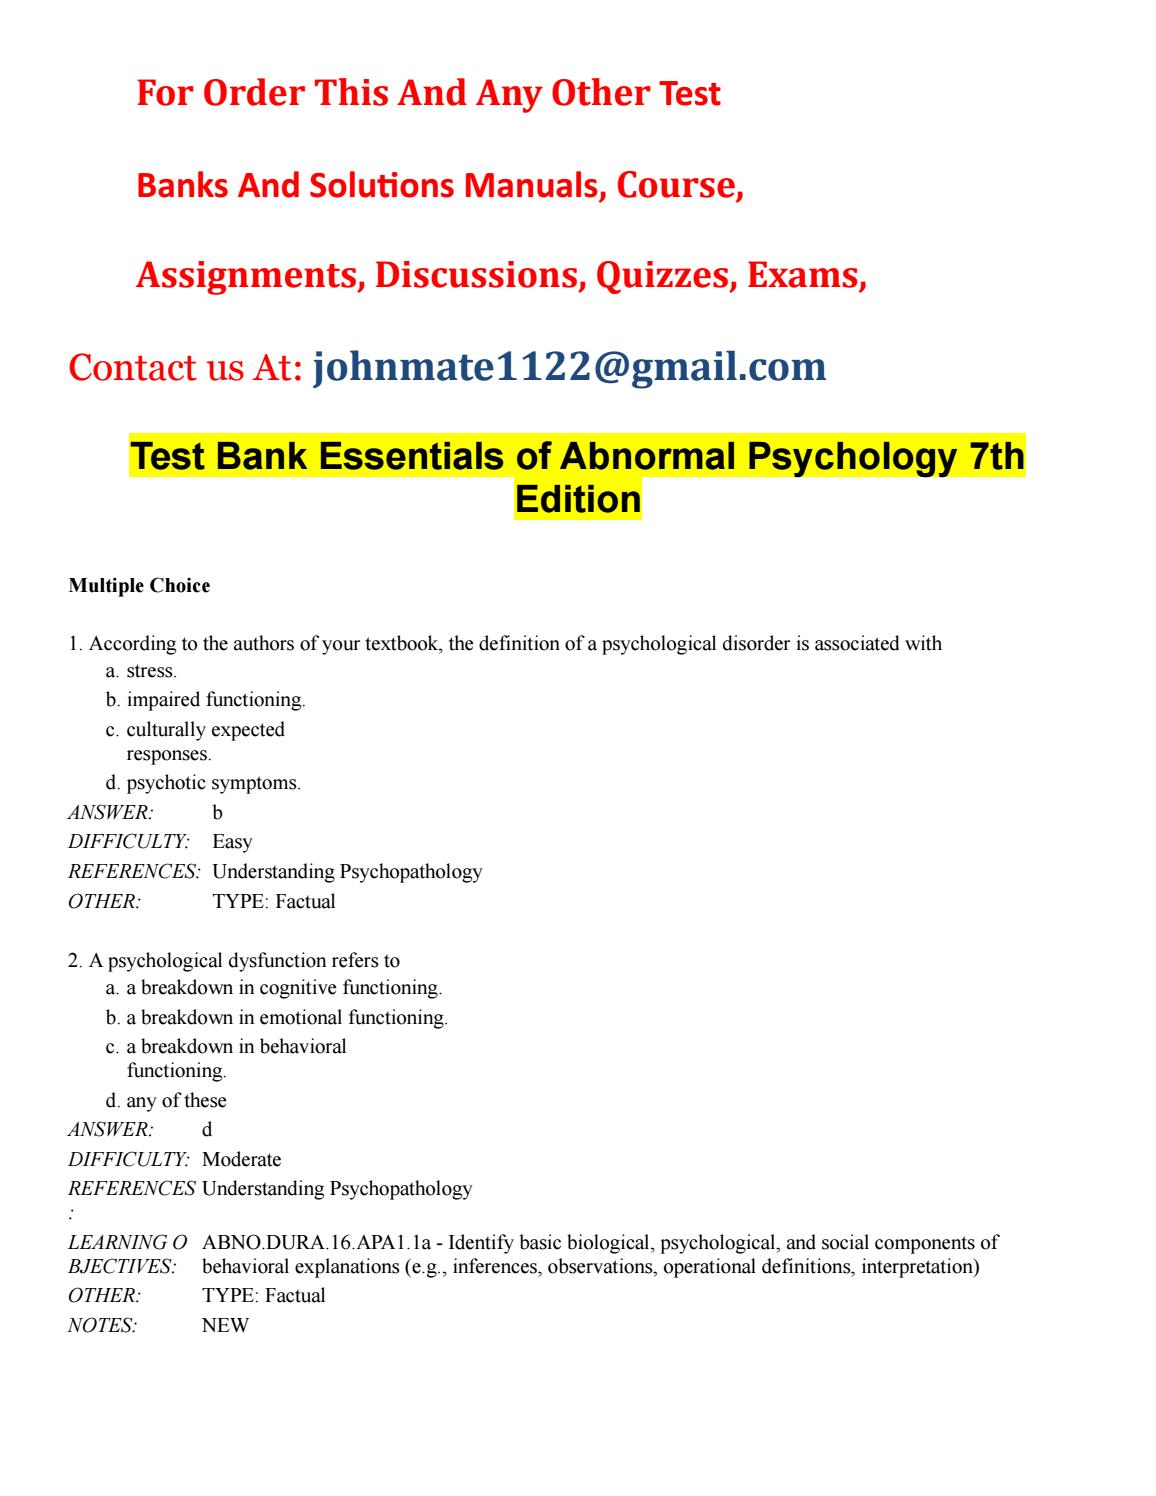 Test20bank20essentials20of20abnormal20psychology207th